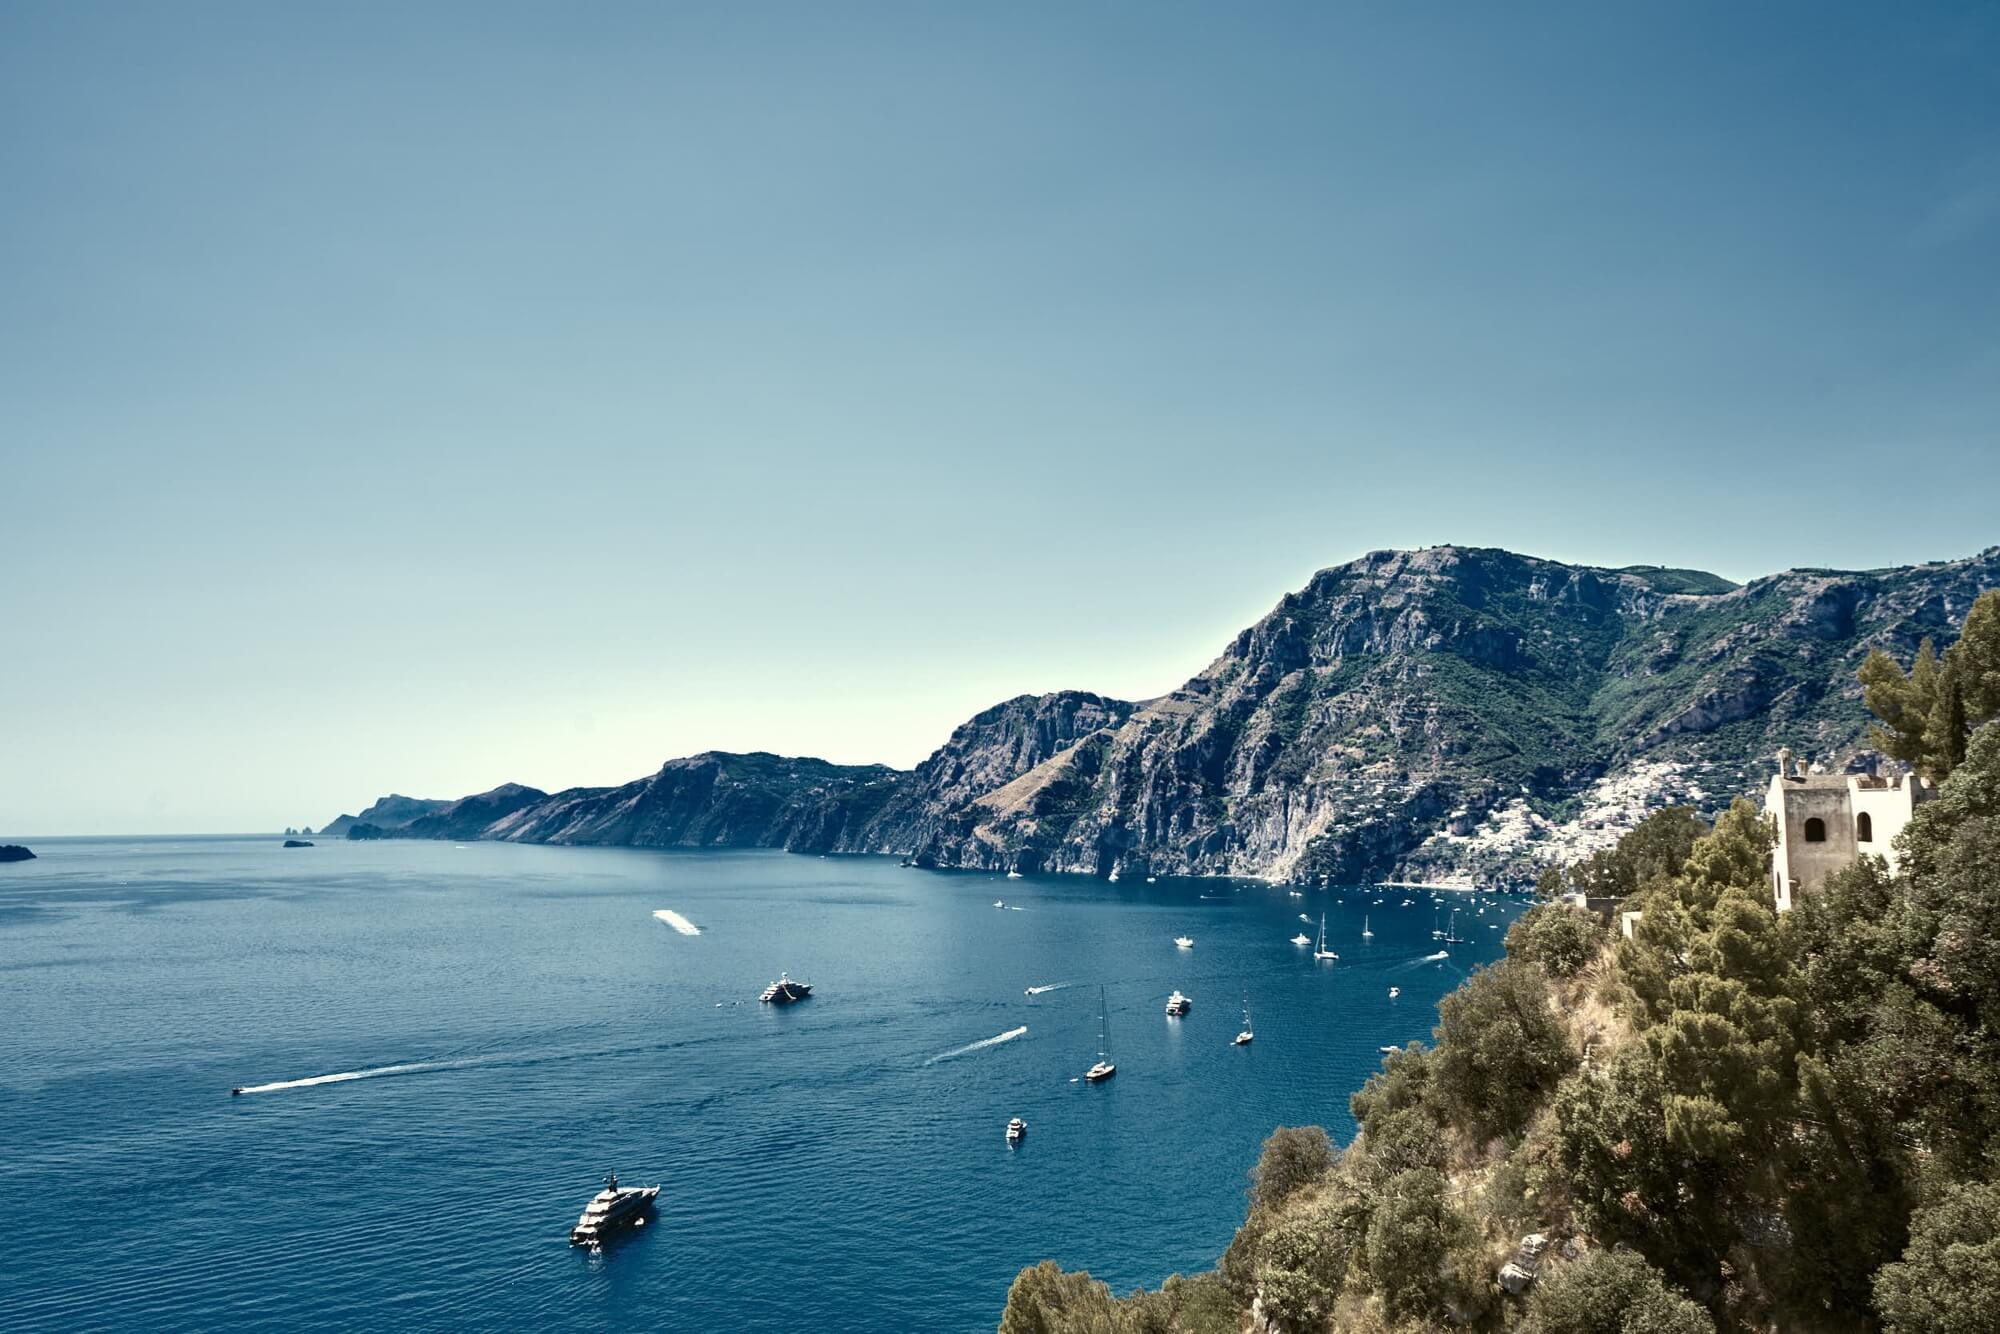 Destination Wedding on the Amalfi Coast & Capri: Ravello, Positano, Sorrento.